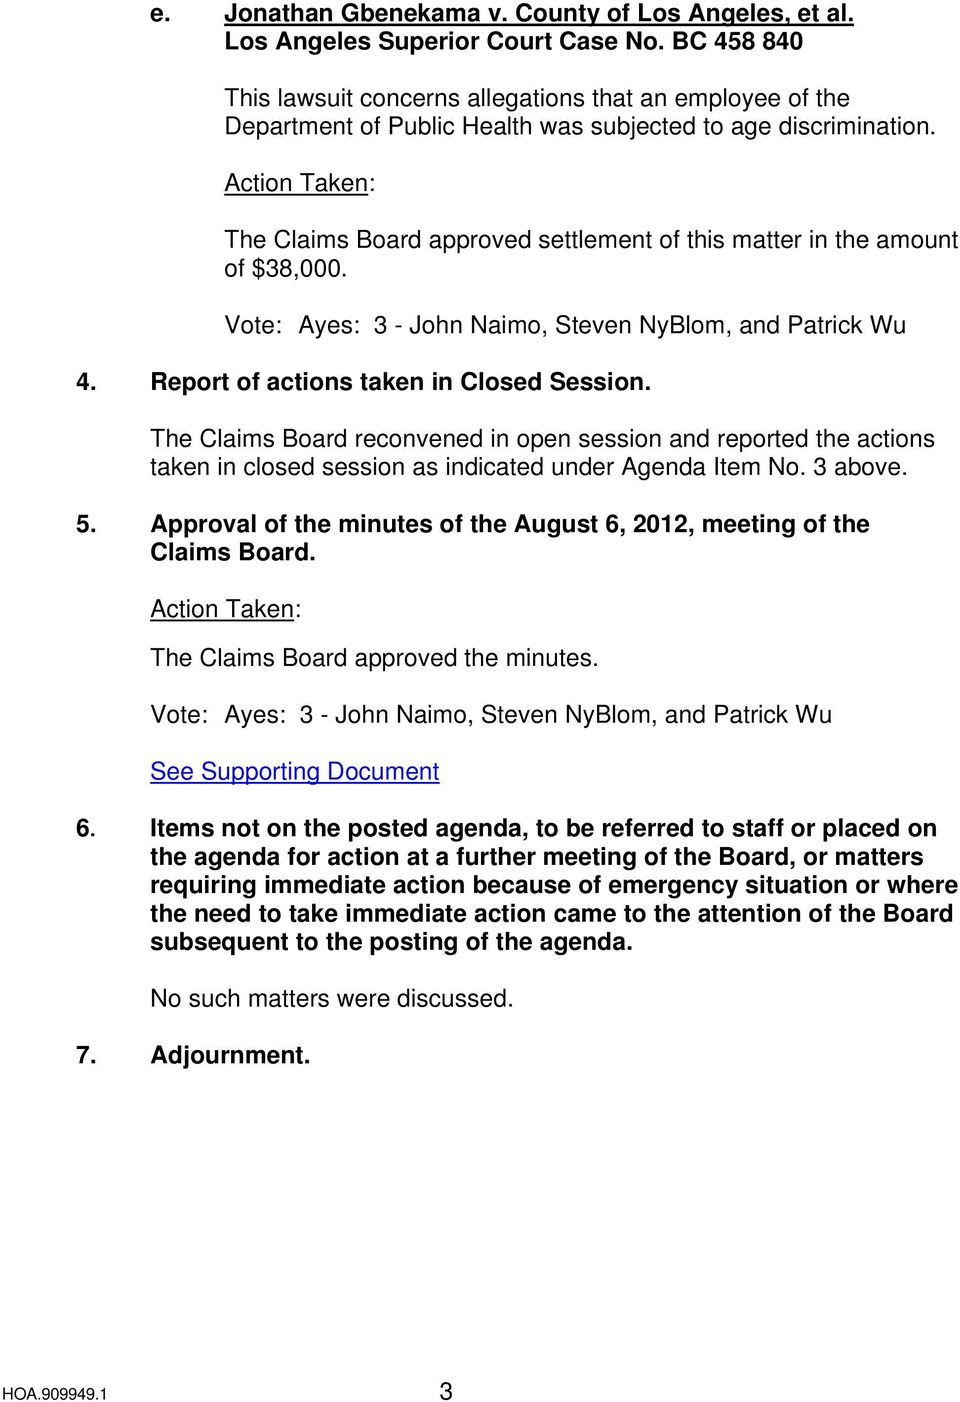 Action Taken: The Claims Board approved settlement of this matter in the amount of $38,000. Vote: Ayes: 3 - John Naimo, Steven NyBlom, and Patrick Wu 4. Report of actions taken in Closed Session.